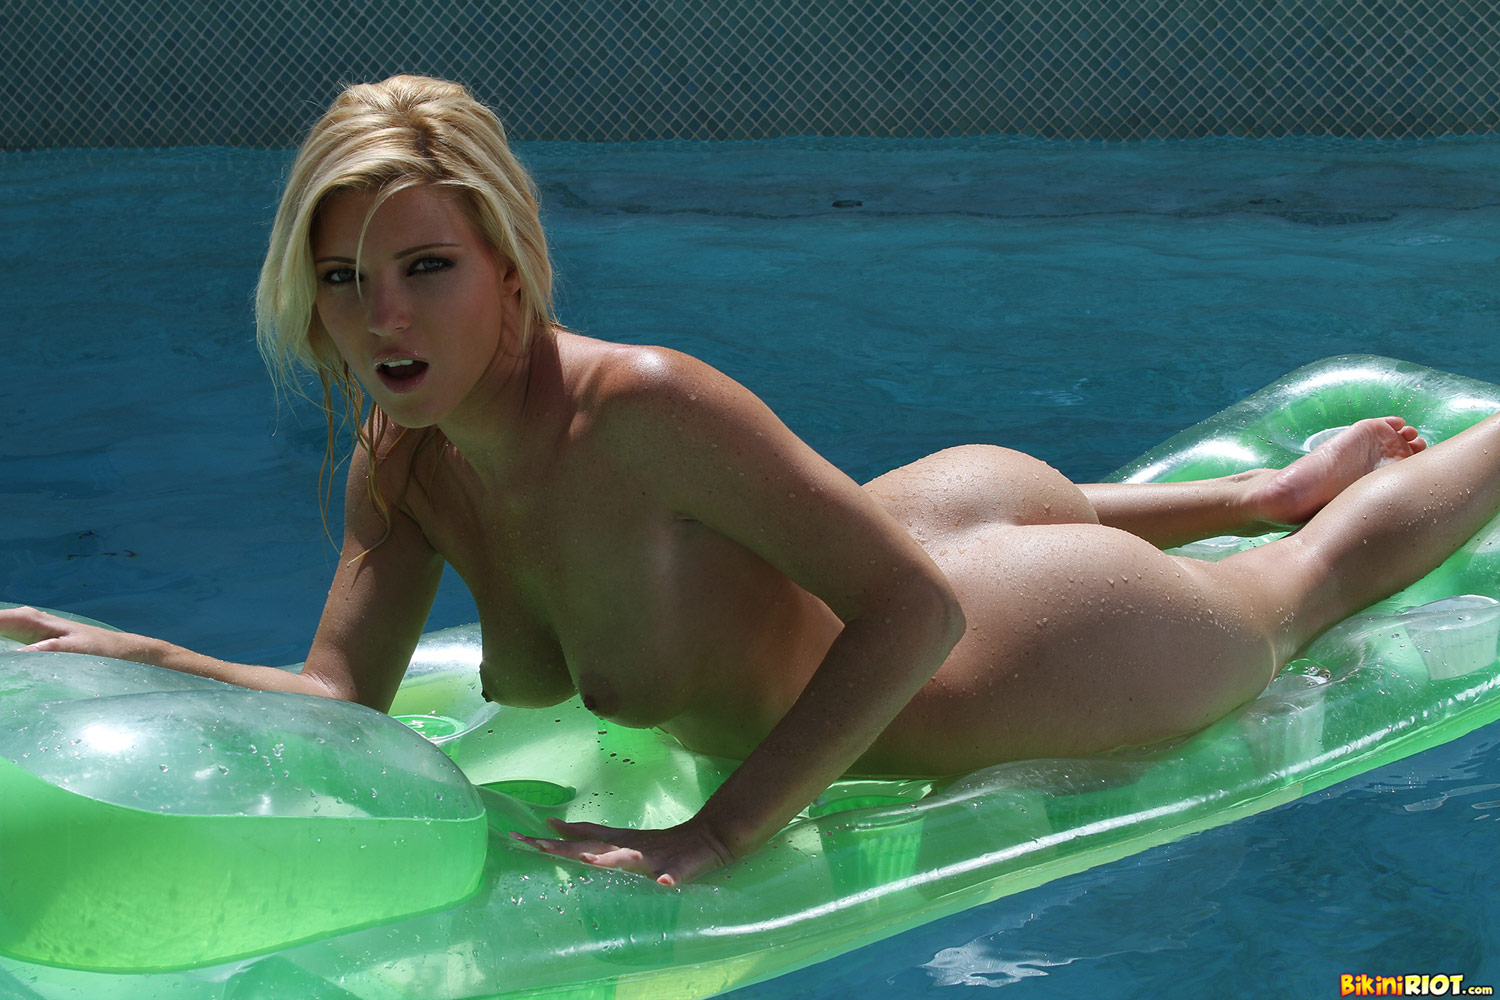 Hot pool girls